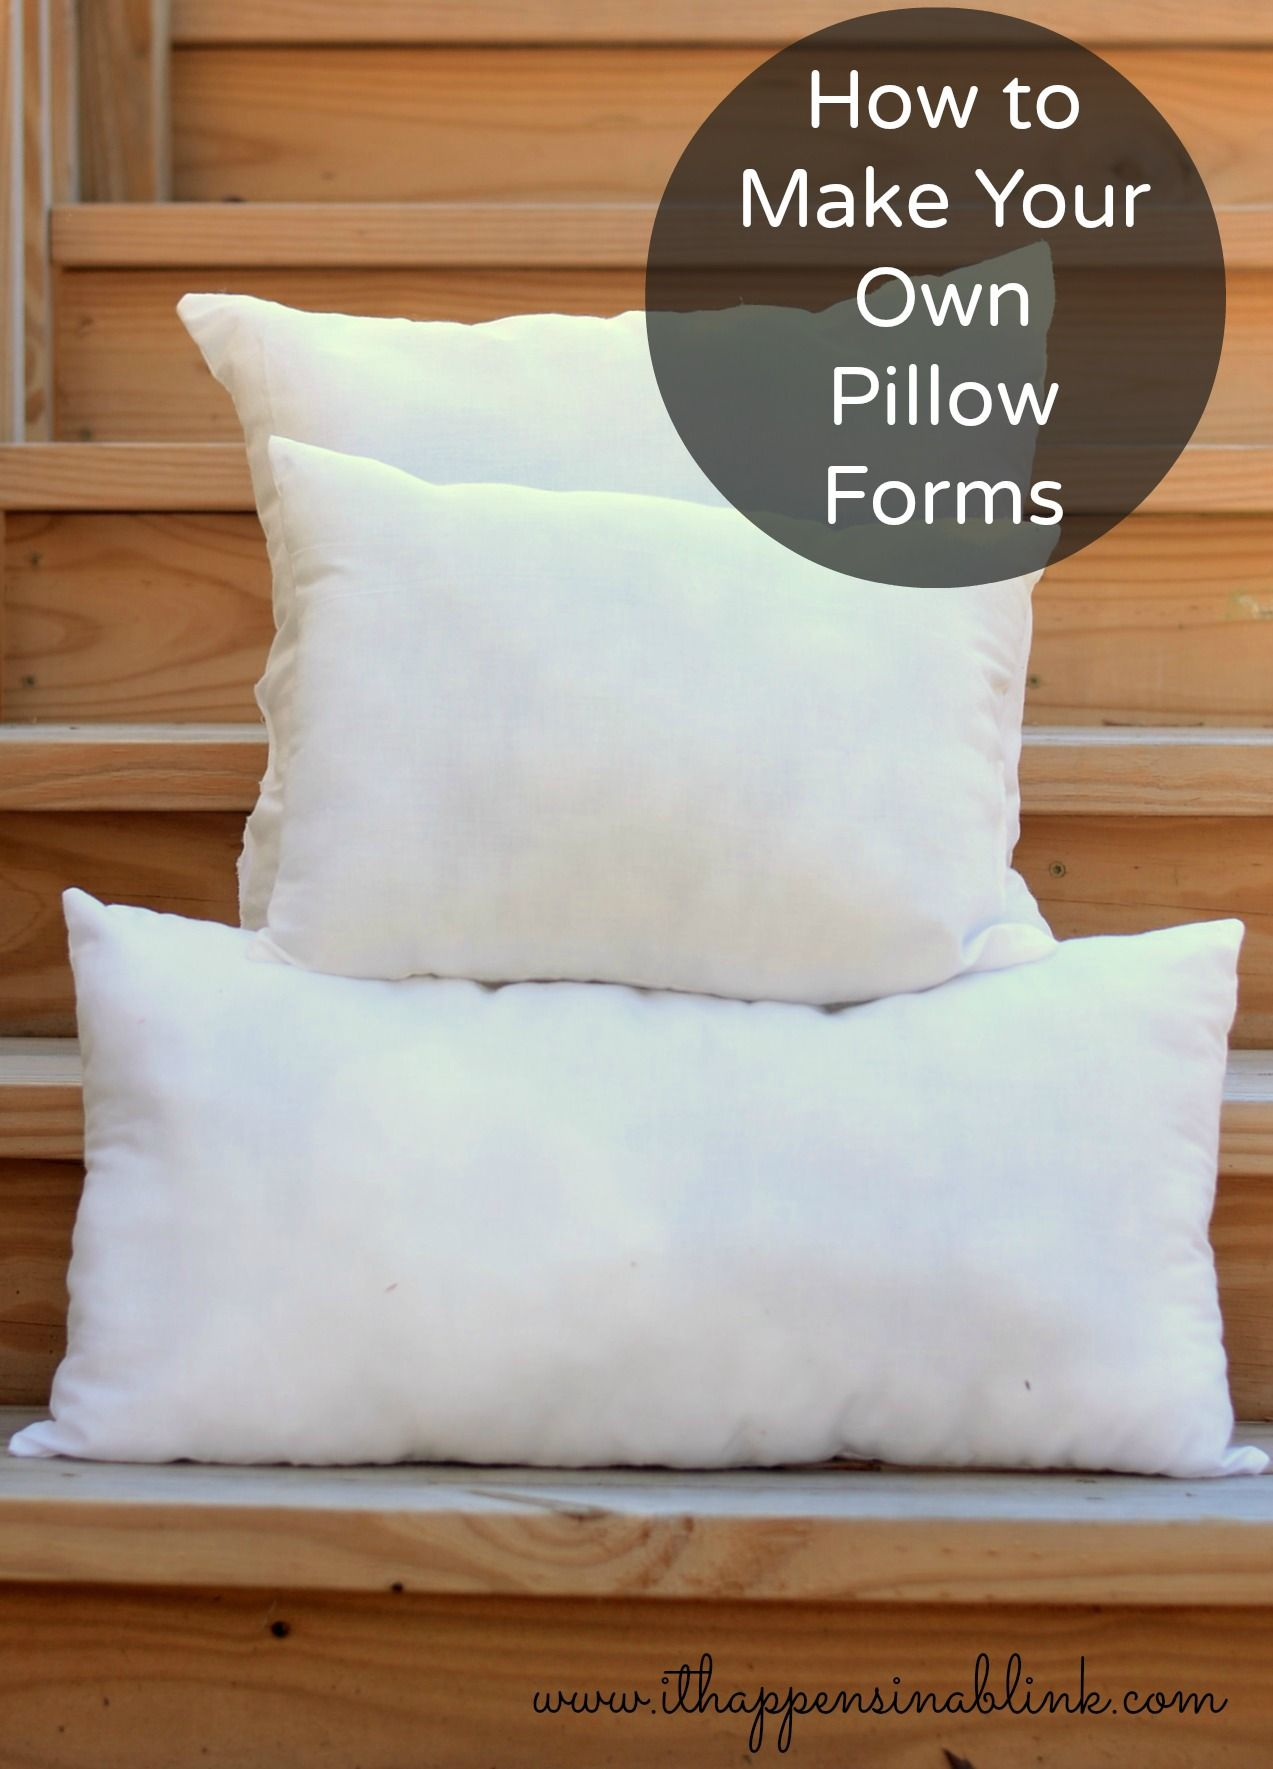 Decorative Pillow Forms : How to Make Your Own Pillow forms or pillow inserts from It Happens in a Blink Get